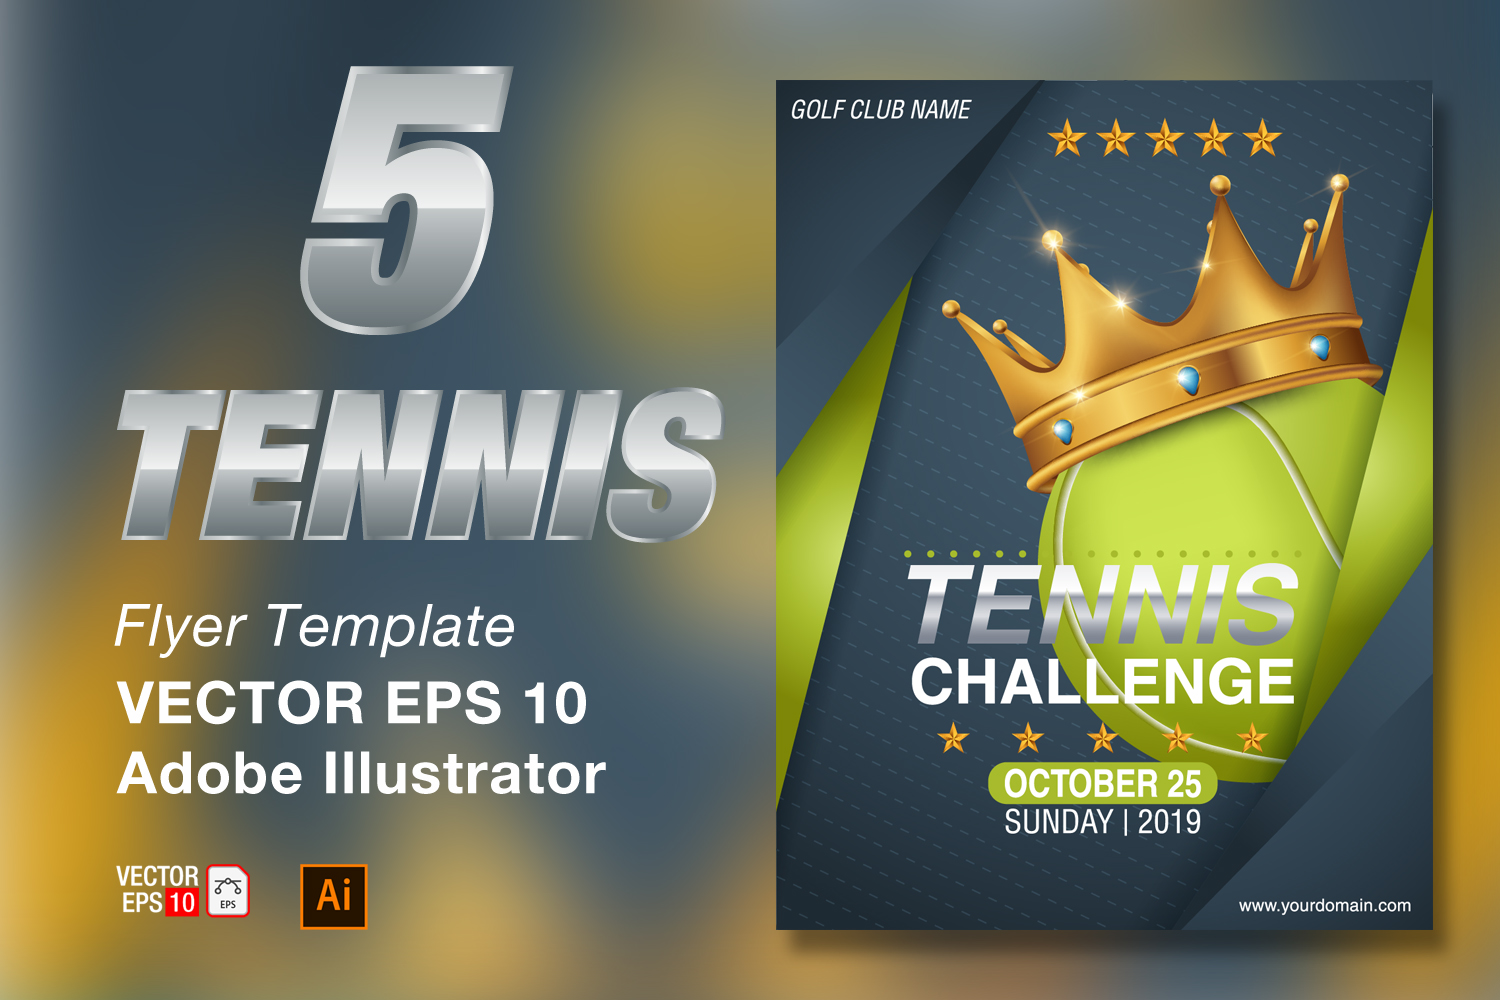 Tennis Tournament Flyer Template example image 1